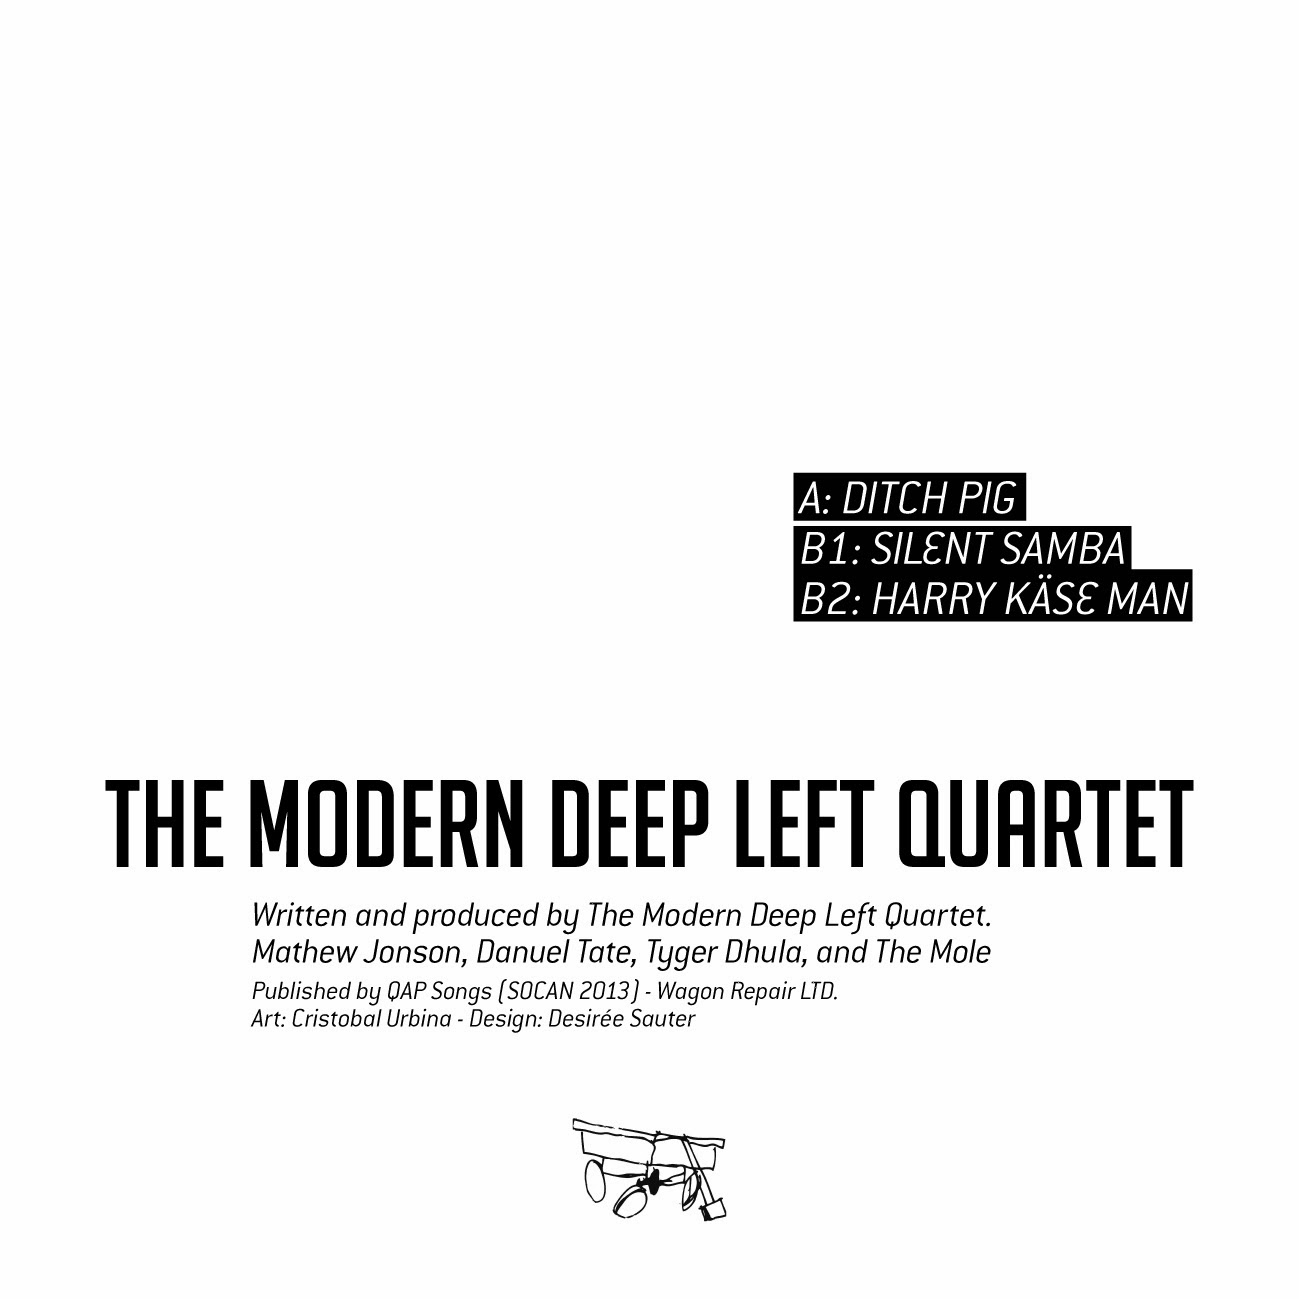 Discosafari - MODERN DEEP LEFT QUARTET - Ditch Pig - Wagon Repair Ltd